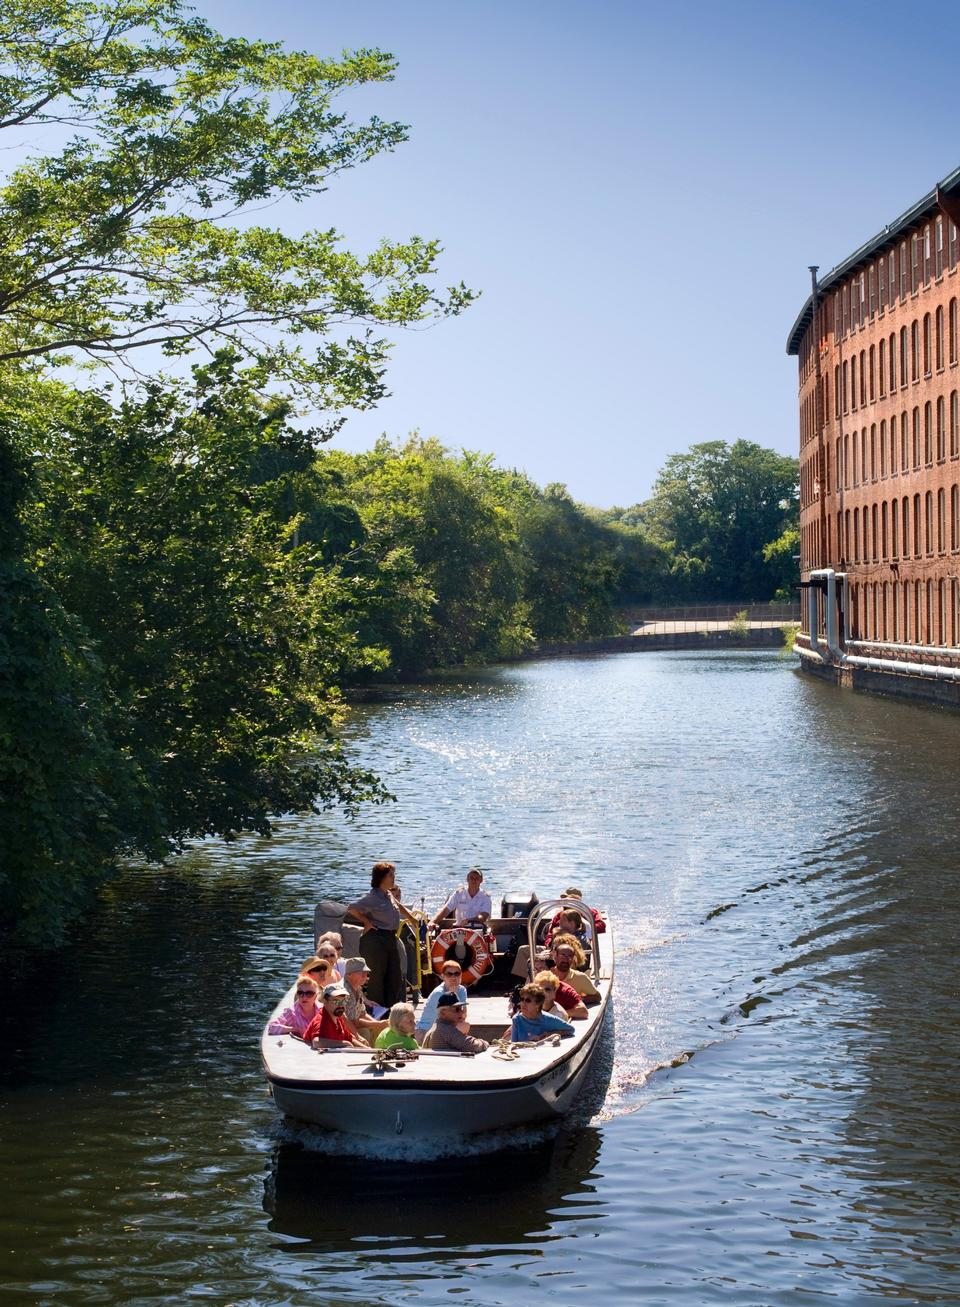 Free Park Tour Boat Headed To Swamp Locks